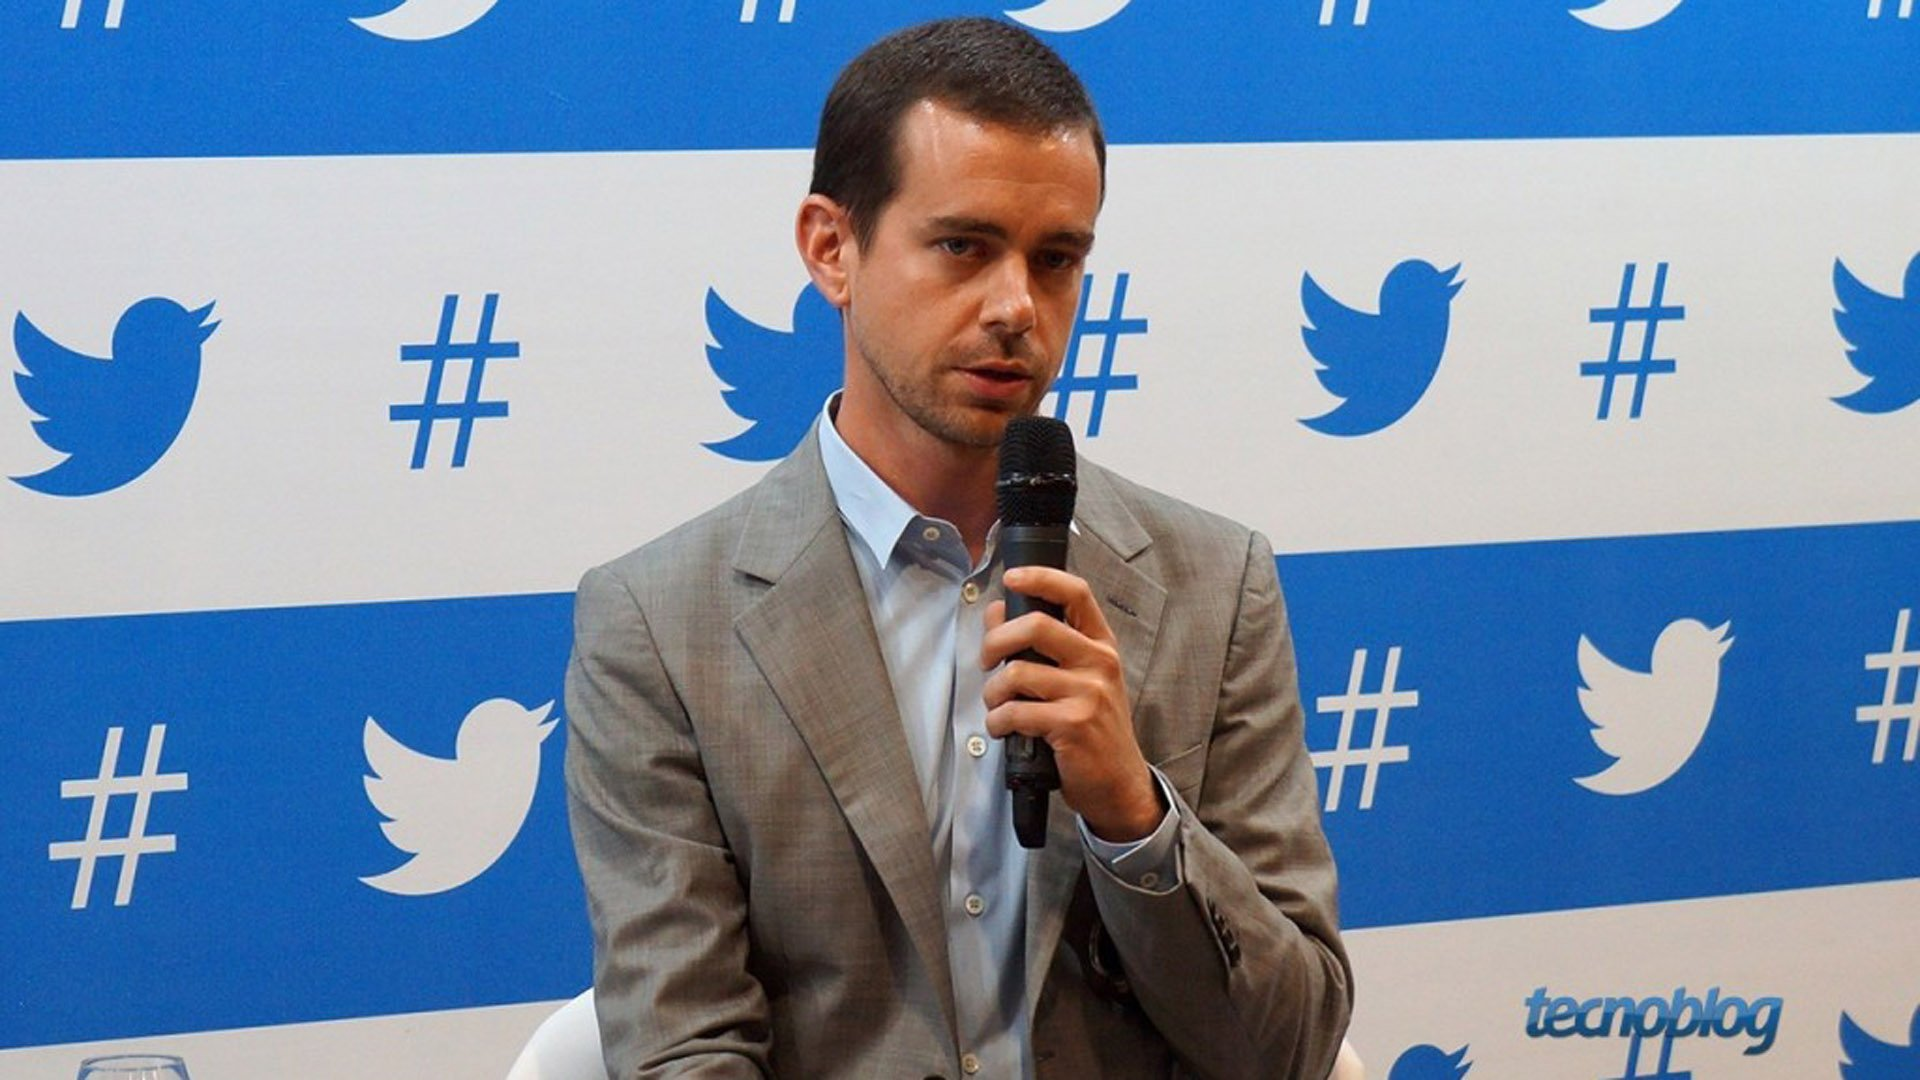 Twitter Accused of AntiSemitism Bans ProJewish Account